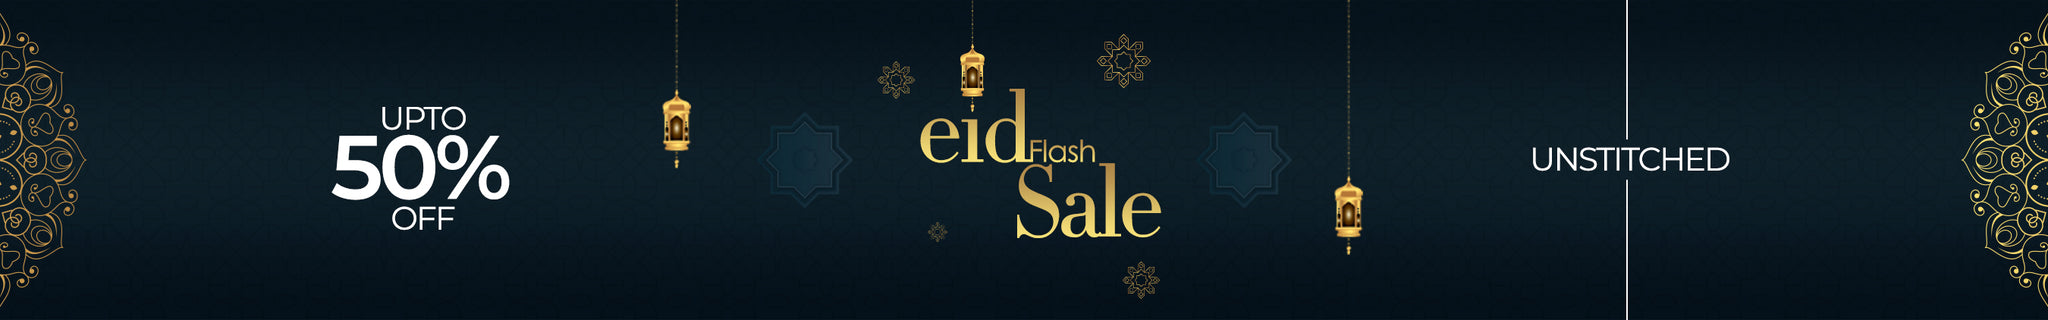 eid-flash-sale-on-unstitched-women's-clothing